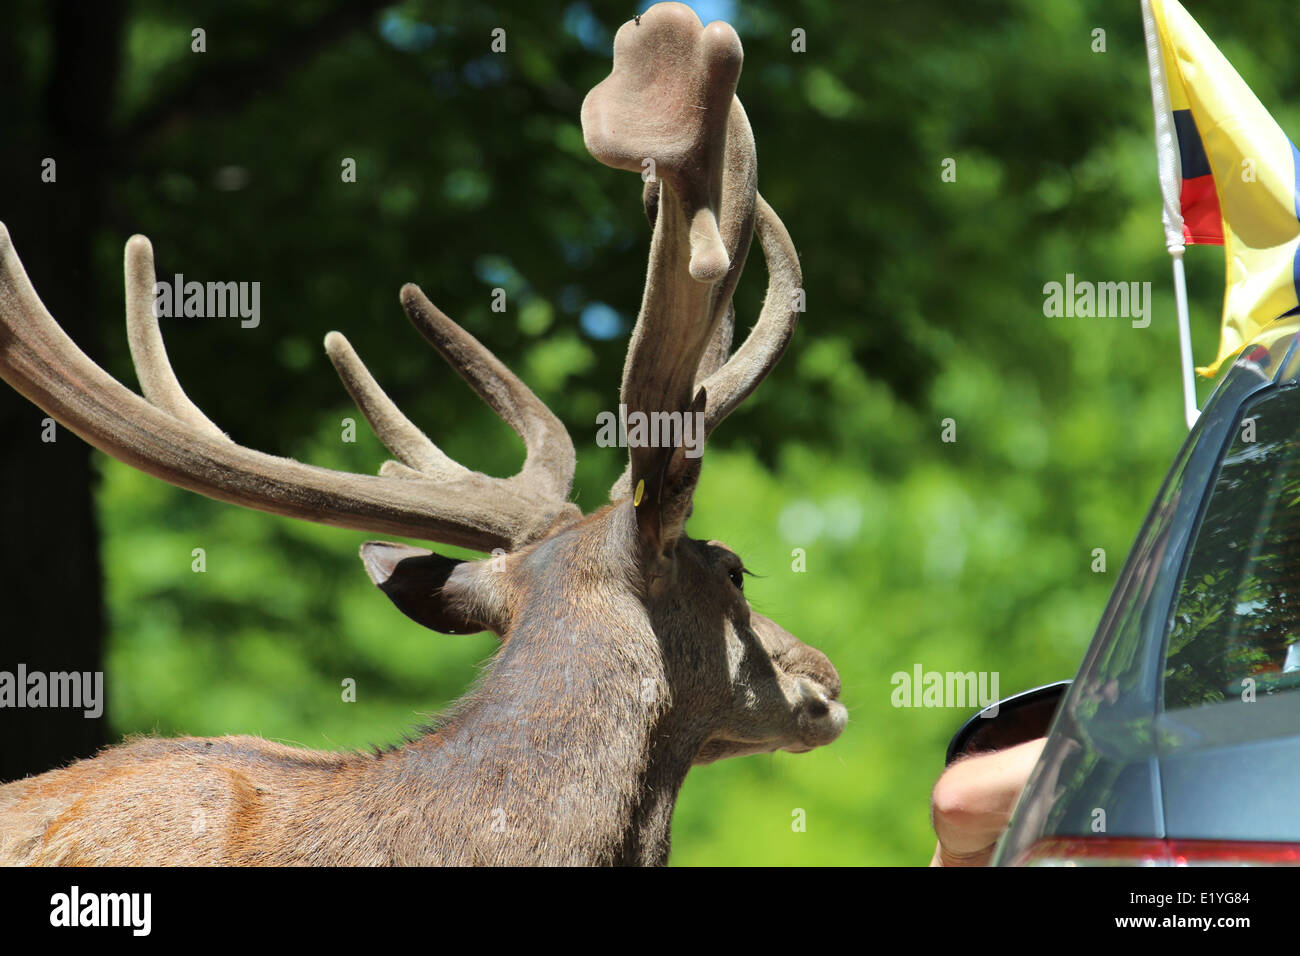 Male deer and vehicle Stock Photo